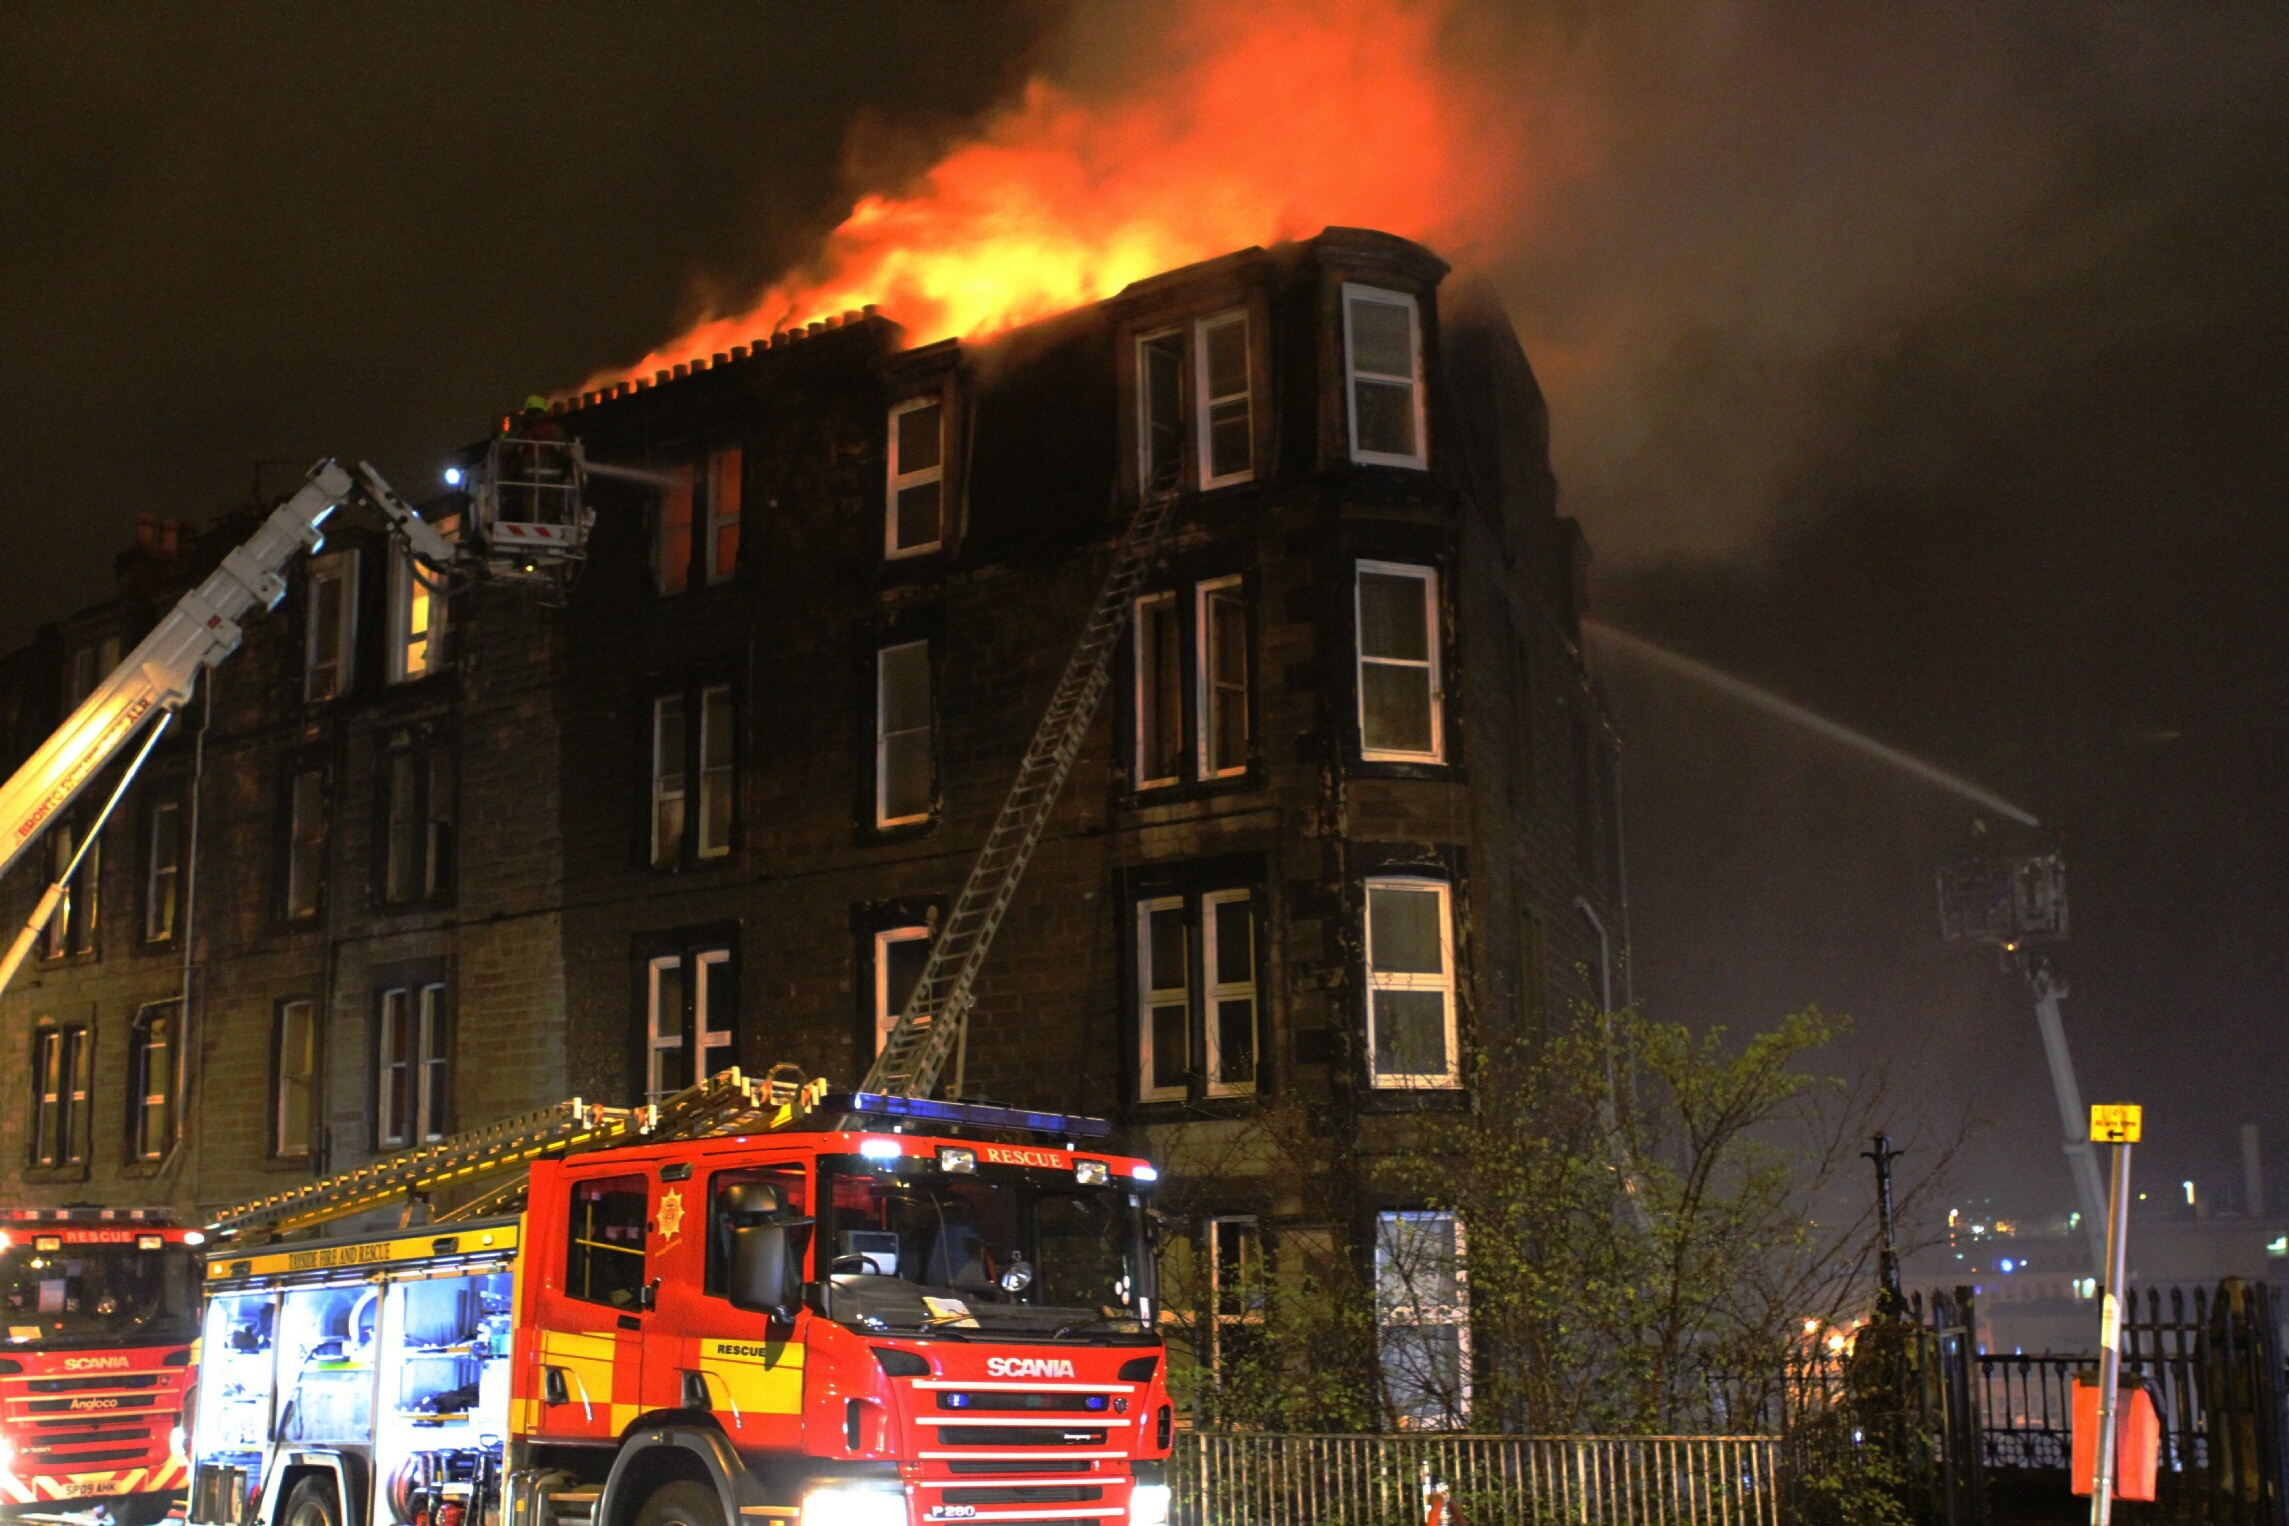 The scene of the fire in a tenement block at Garland Place, Dundee.